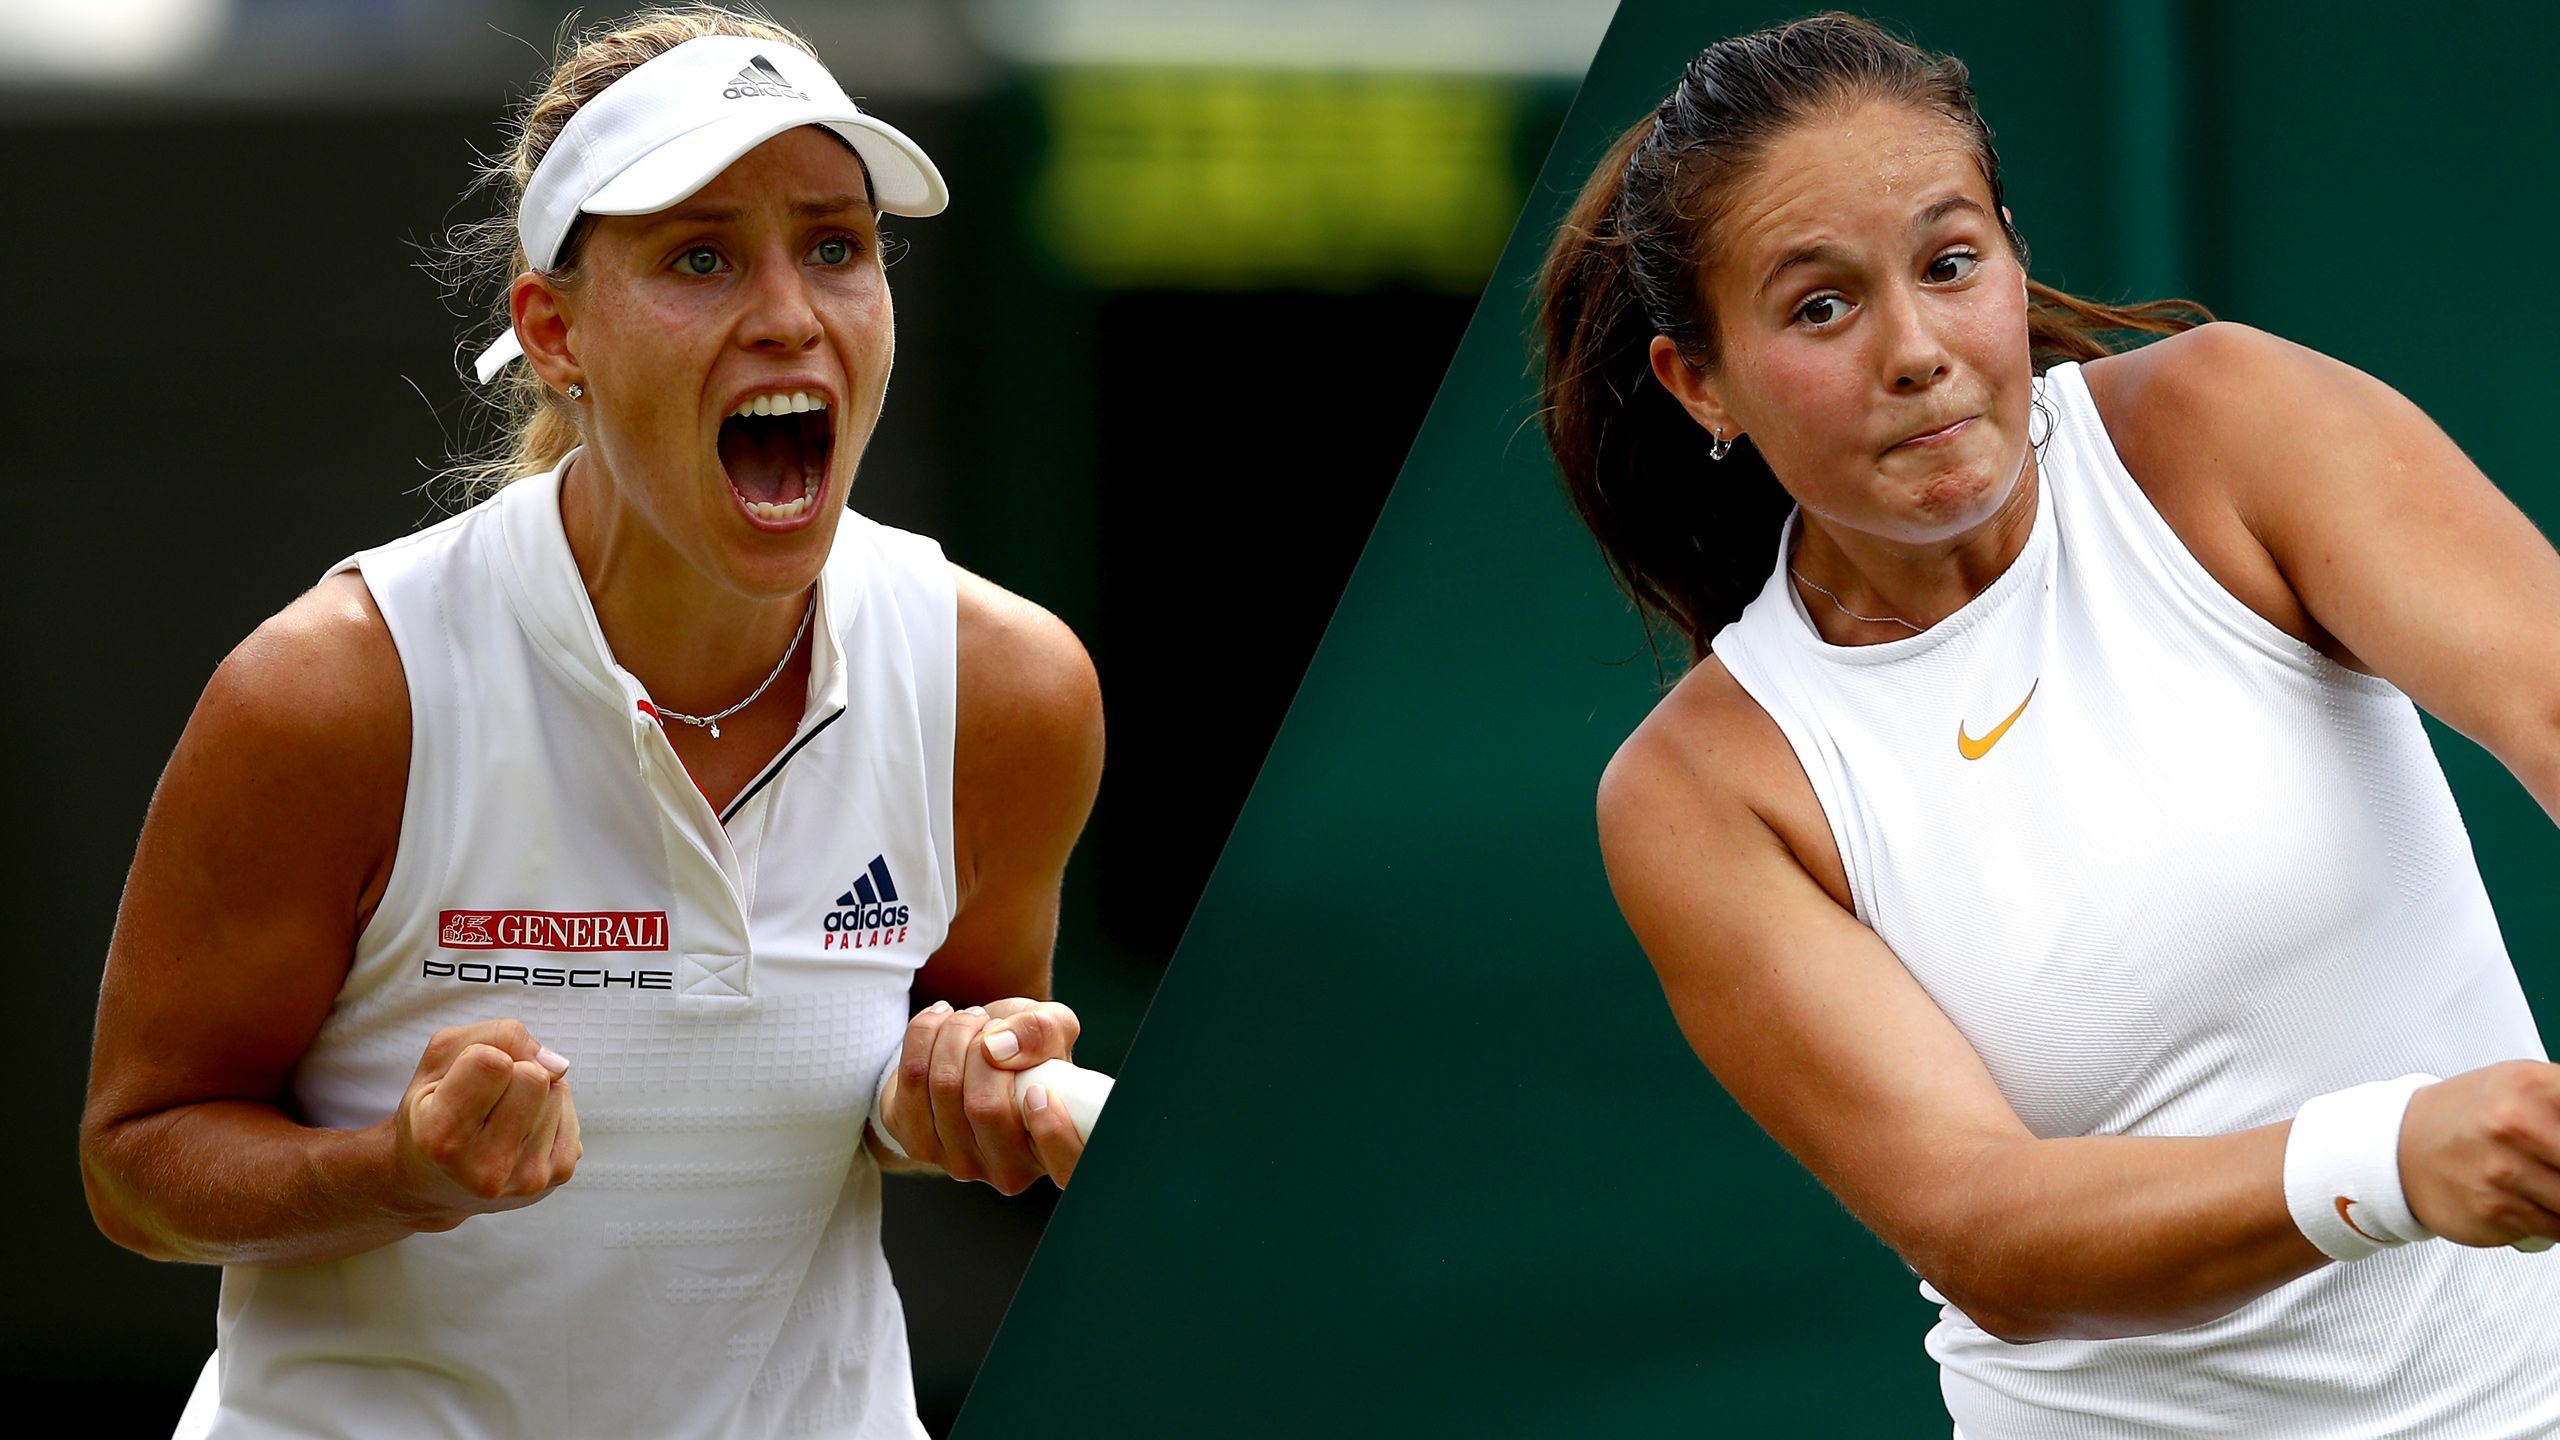 (11) Kerber vs. (14) Kasatkina (Ladies' Quarterfinals)